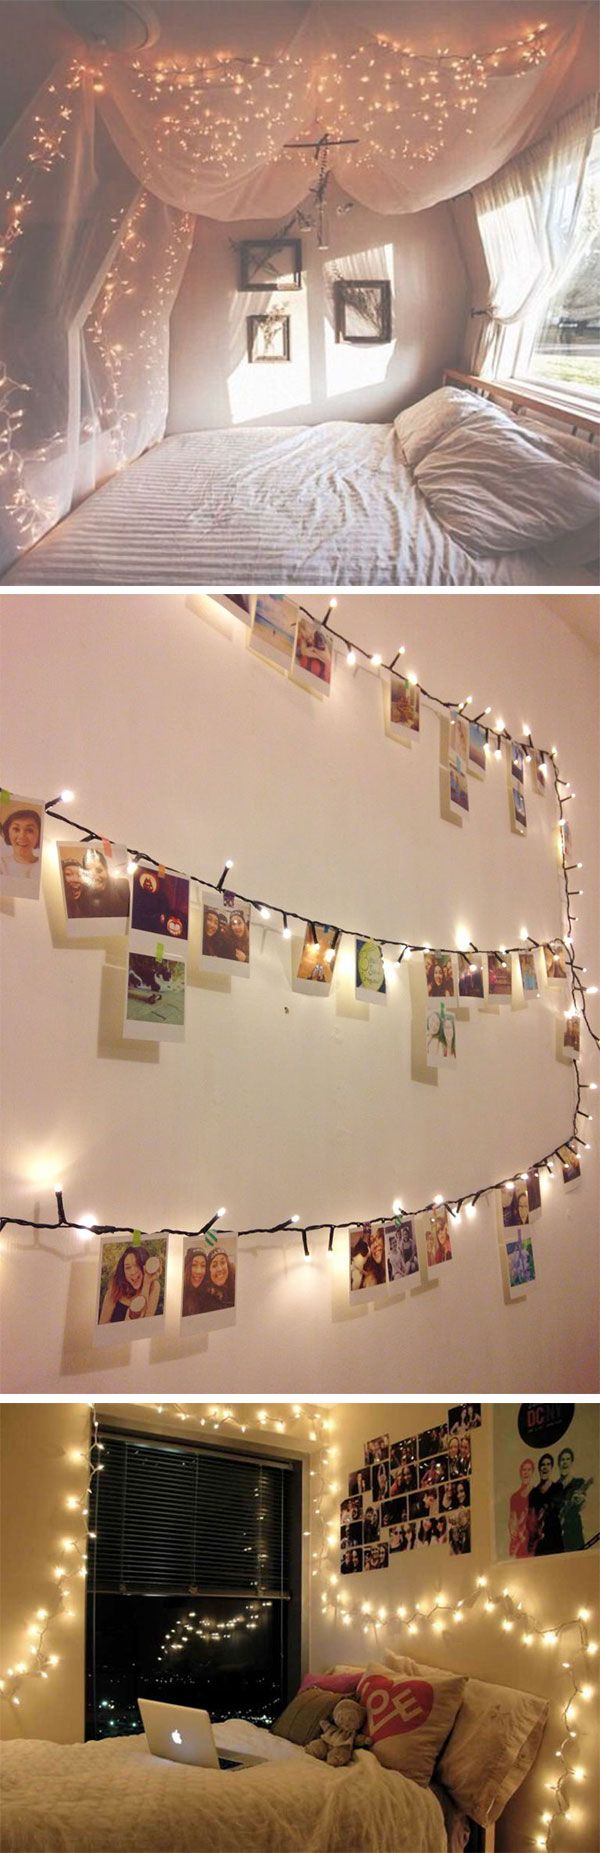 Diy bedroom decor ideas pinterest - 13 Ways To Use Fairy Lights To Make Your Home Look Magical Room Decor Diy